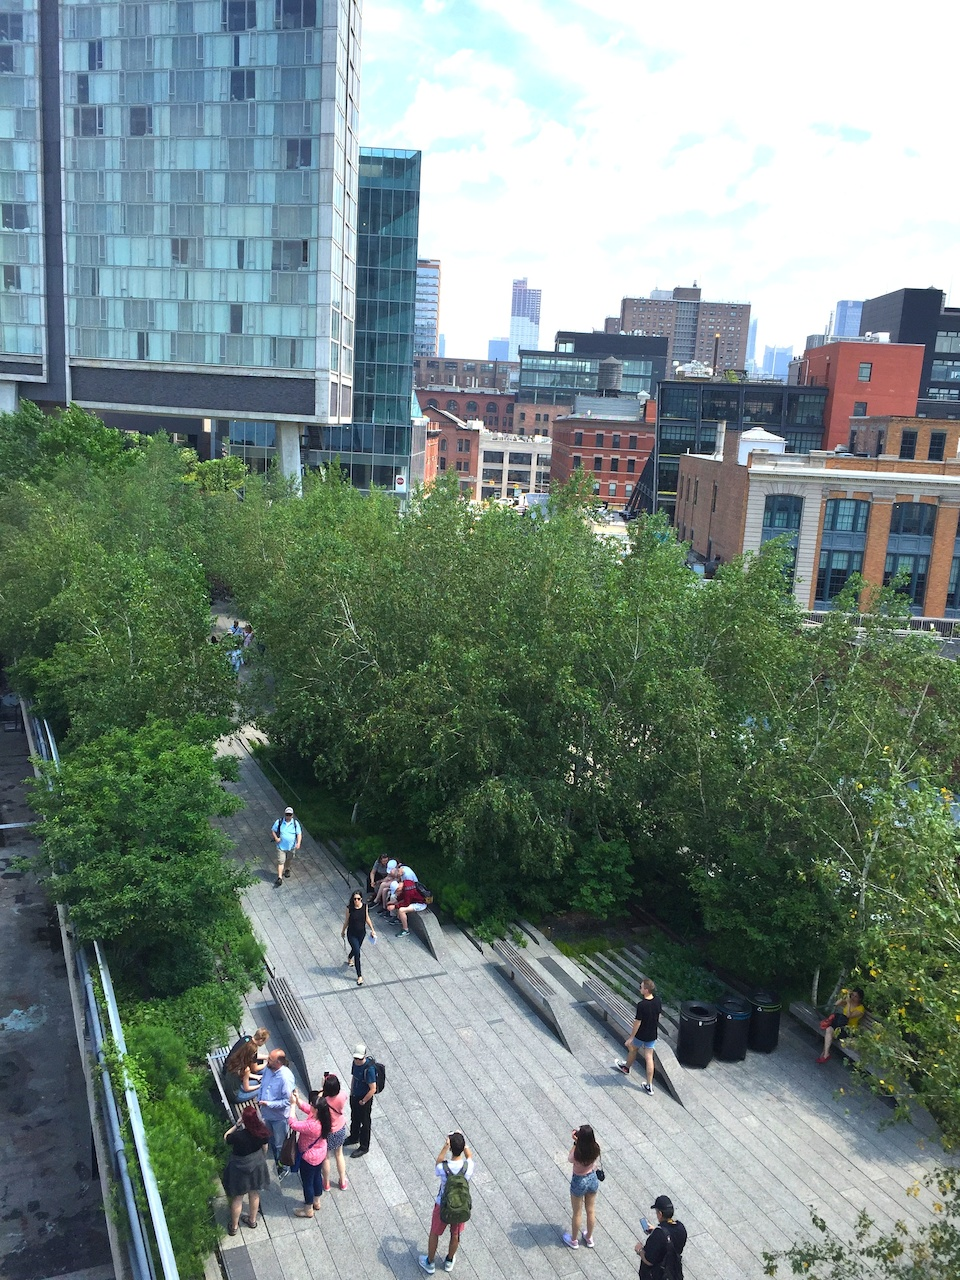 The balcony at the new Whitney Museum of Art affords a good view of The High Line, a paved walking trail on the west side of Manhattan.